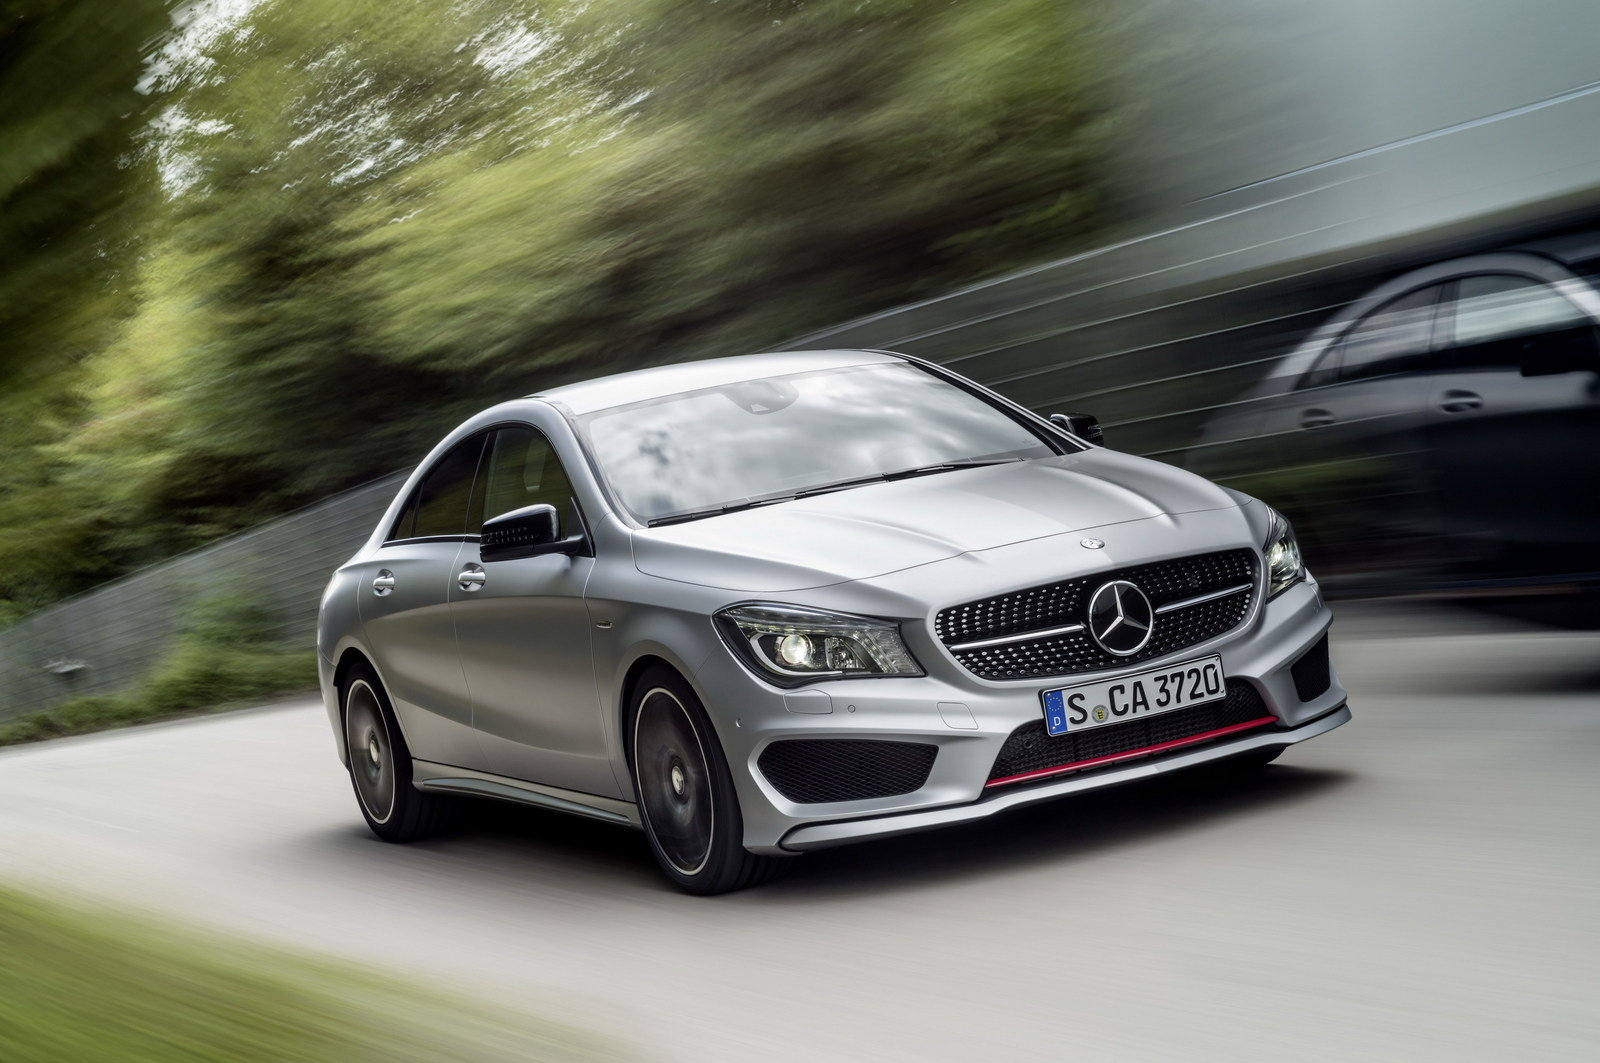 2014 mercedes benz cla 250 sport review top speed